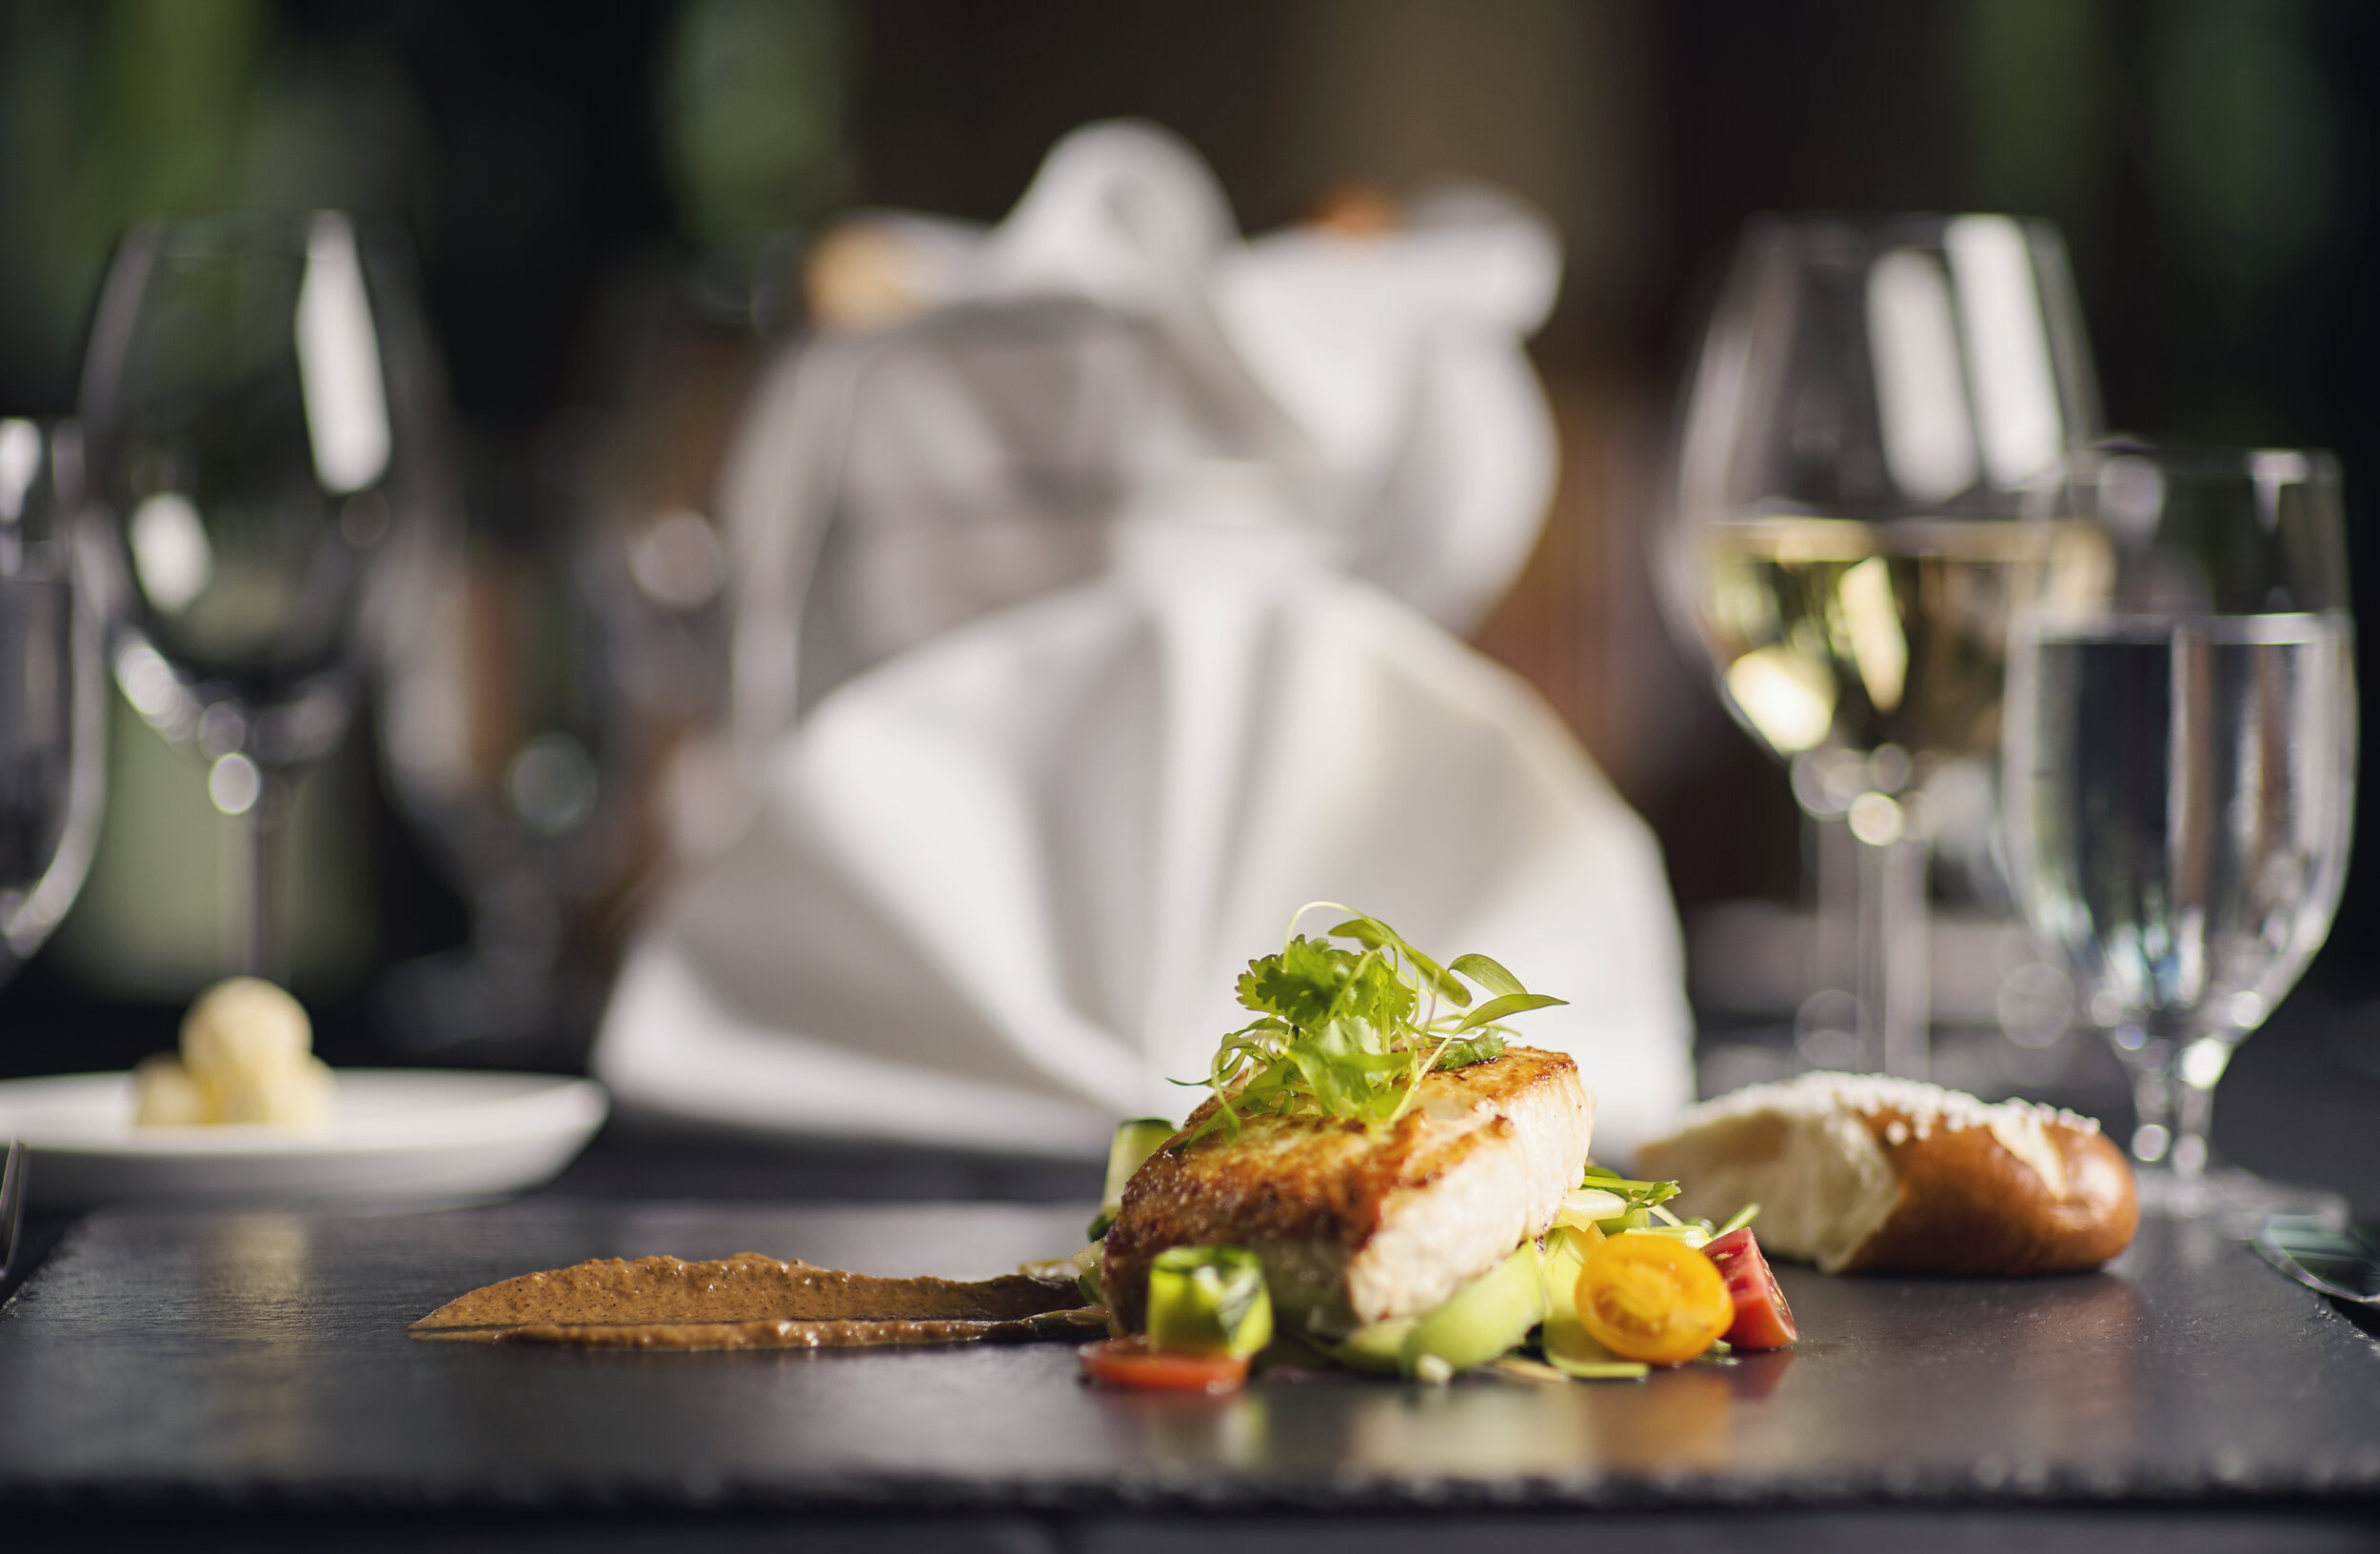 DINING - Set within the Clubhouse are numerous dining experiences for members to enjoy. Isleworth's professional team of chefs is trained in a multitude of culinary arts, creating menus which draw upon cultural inspirations, seasonal ingredients and organic selections.